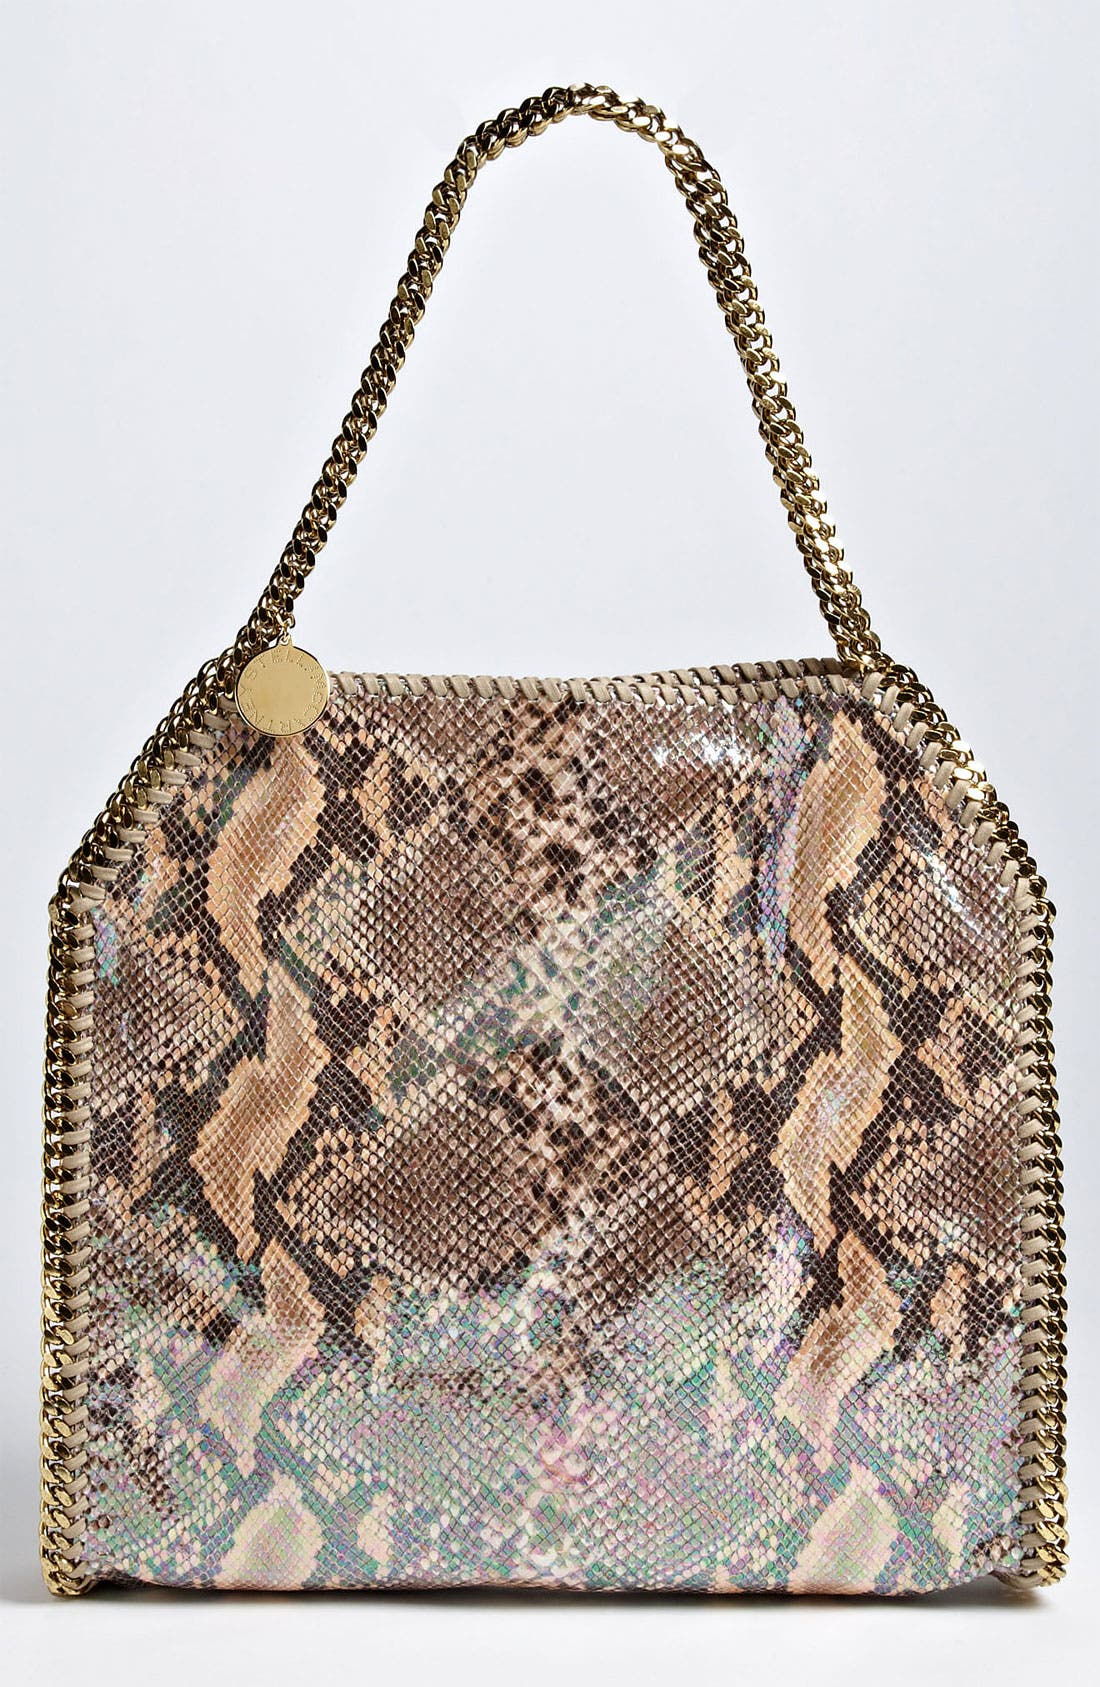 Alternate Image 1 Selected - Stella McCartney 'Falabella - Small' Oleographic Faux Python Tote